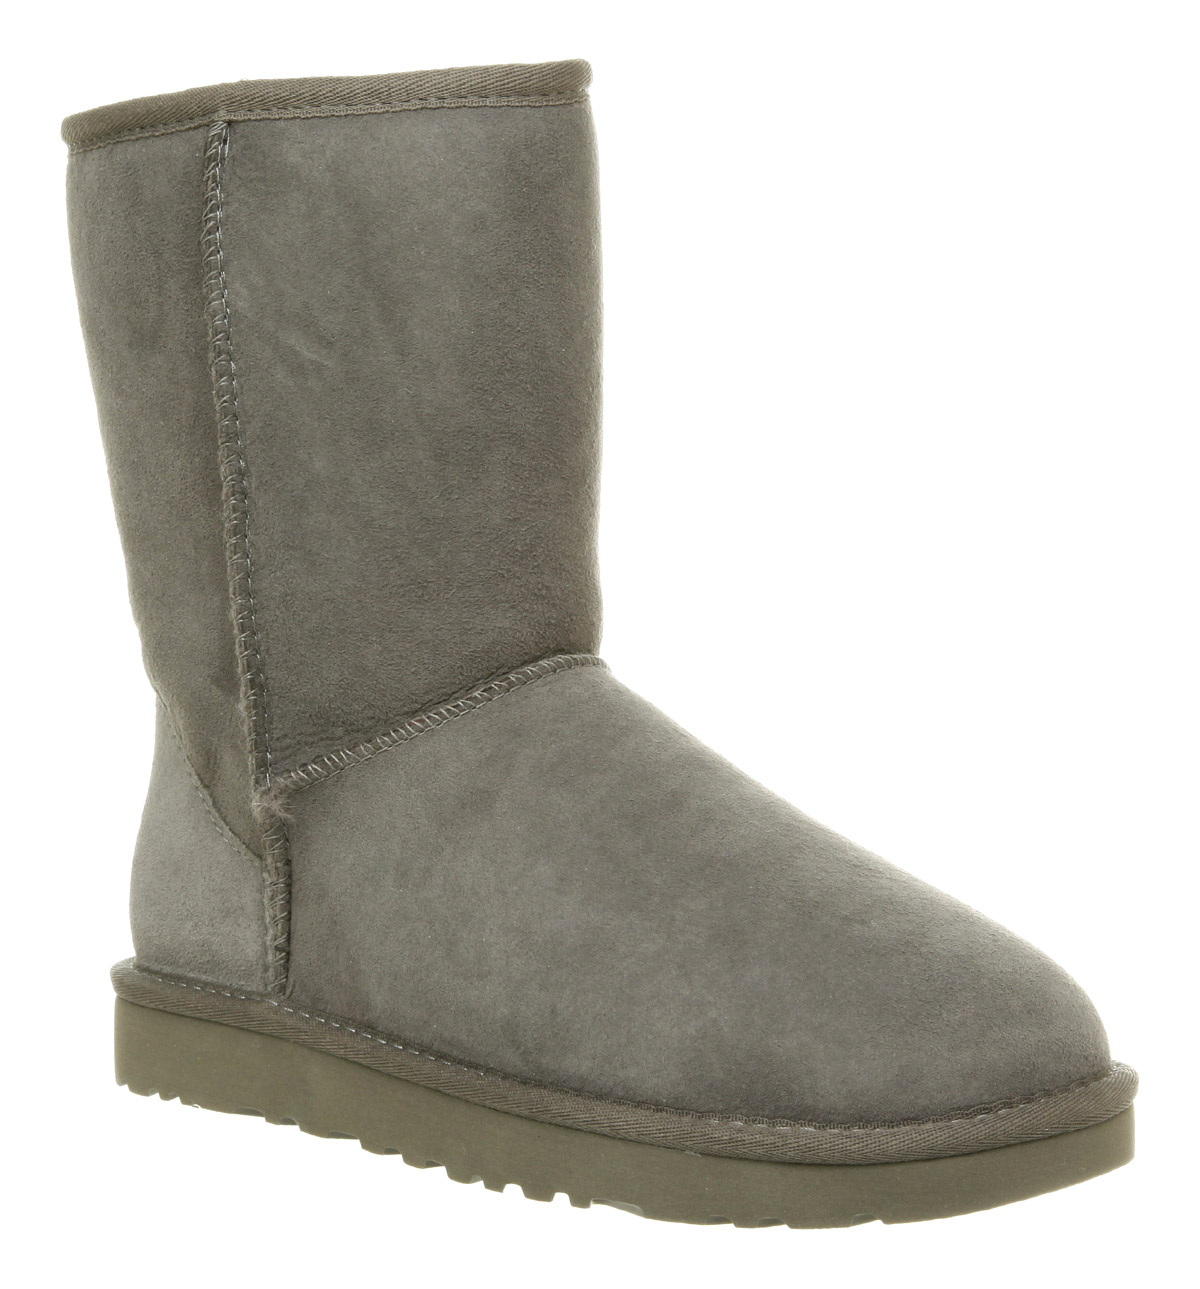 Cheap Uggs Boots For Women